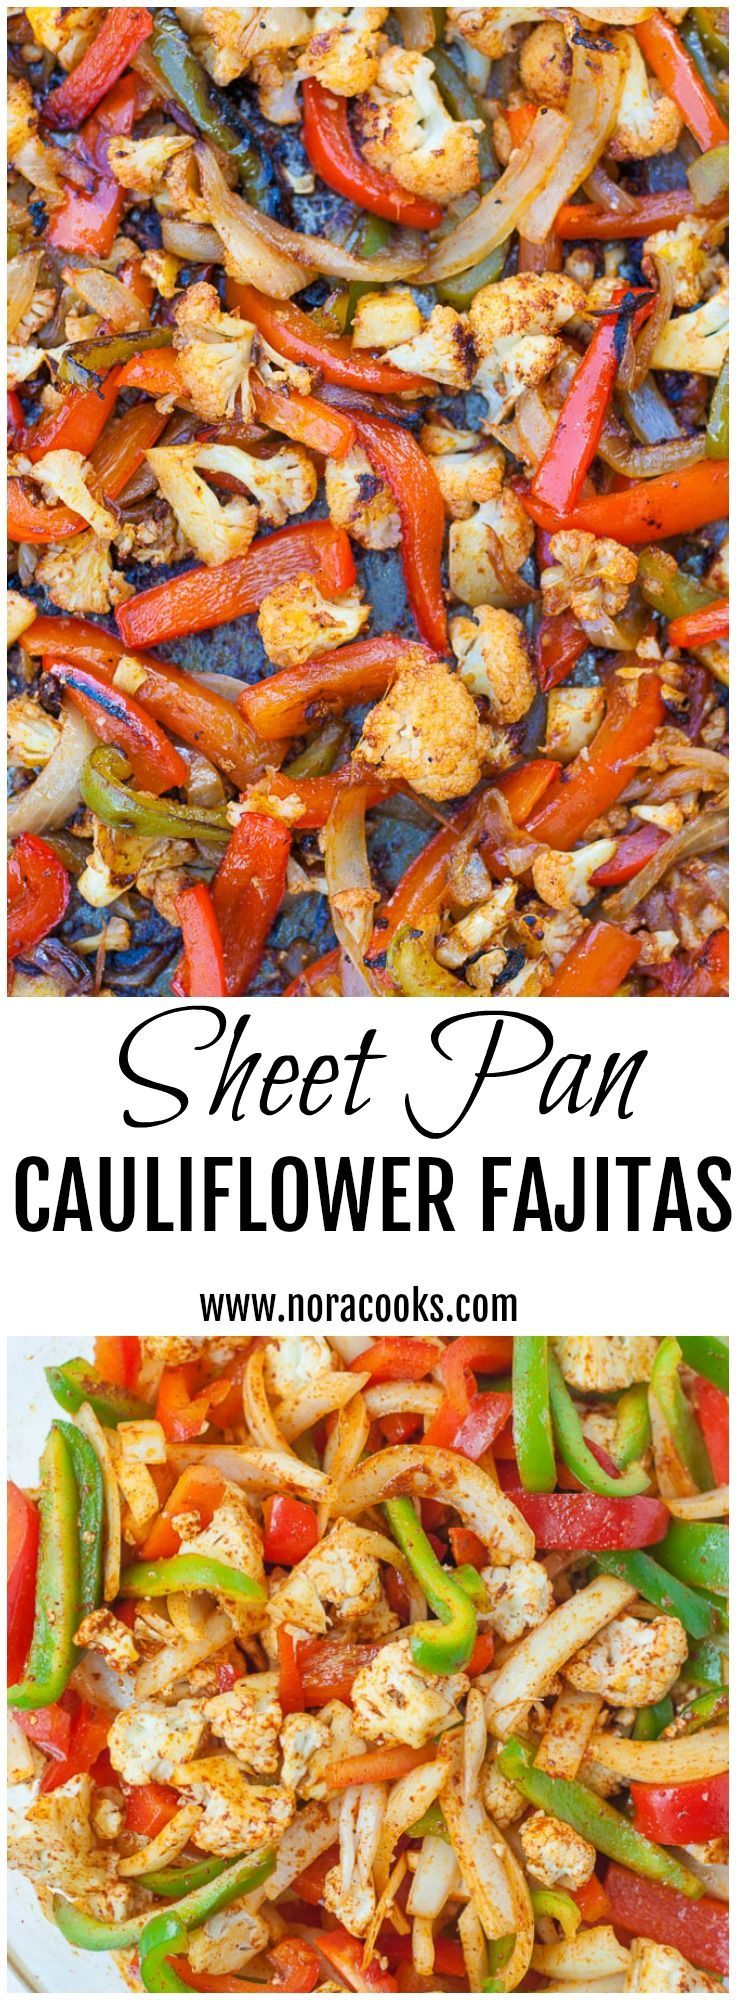 Sheet Pan Cauliflower Fajitas- An easy and delicious weeknight meal. Serve with avocado slices, spanish rice and black beans!